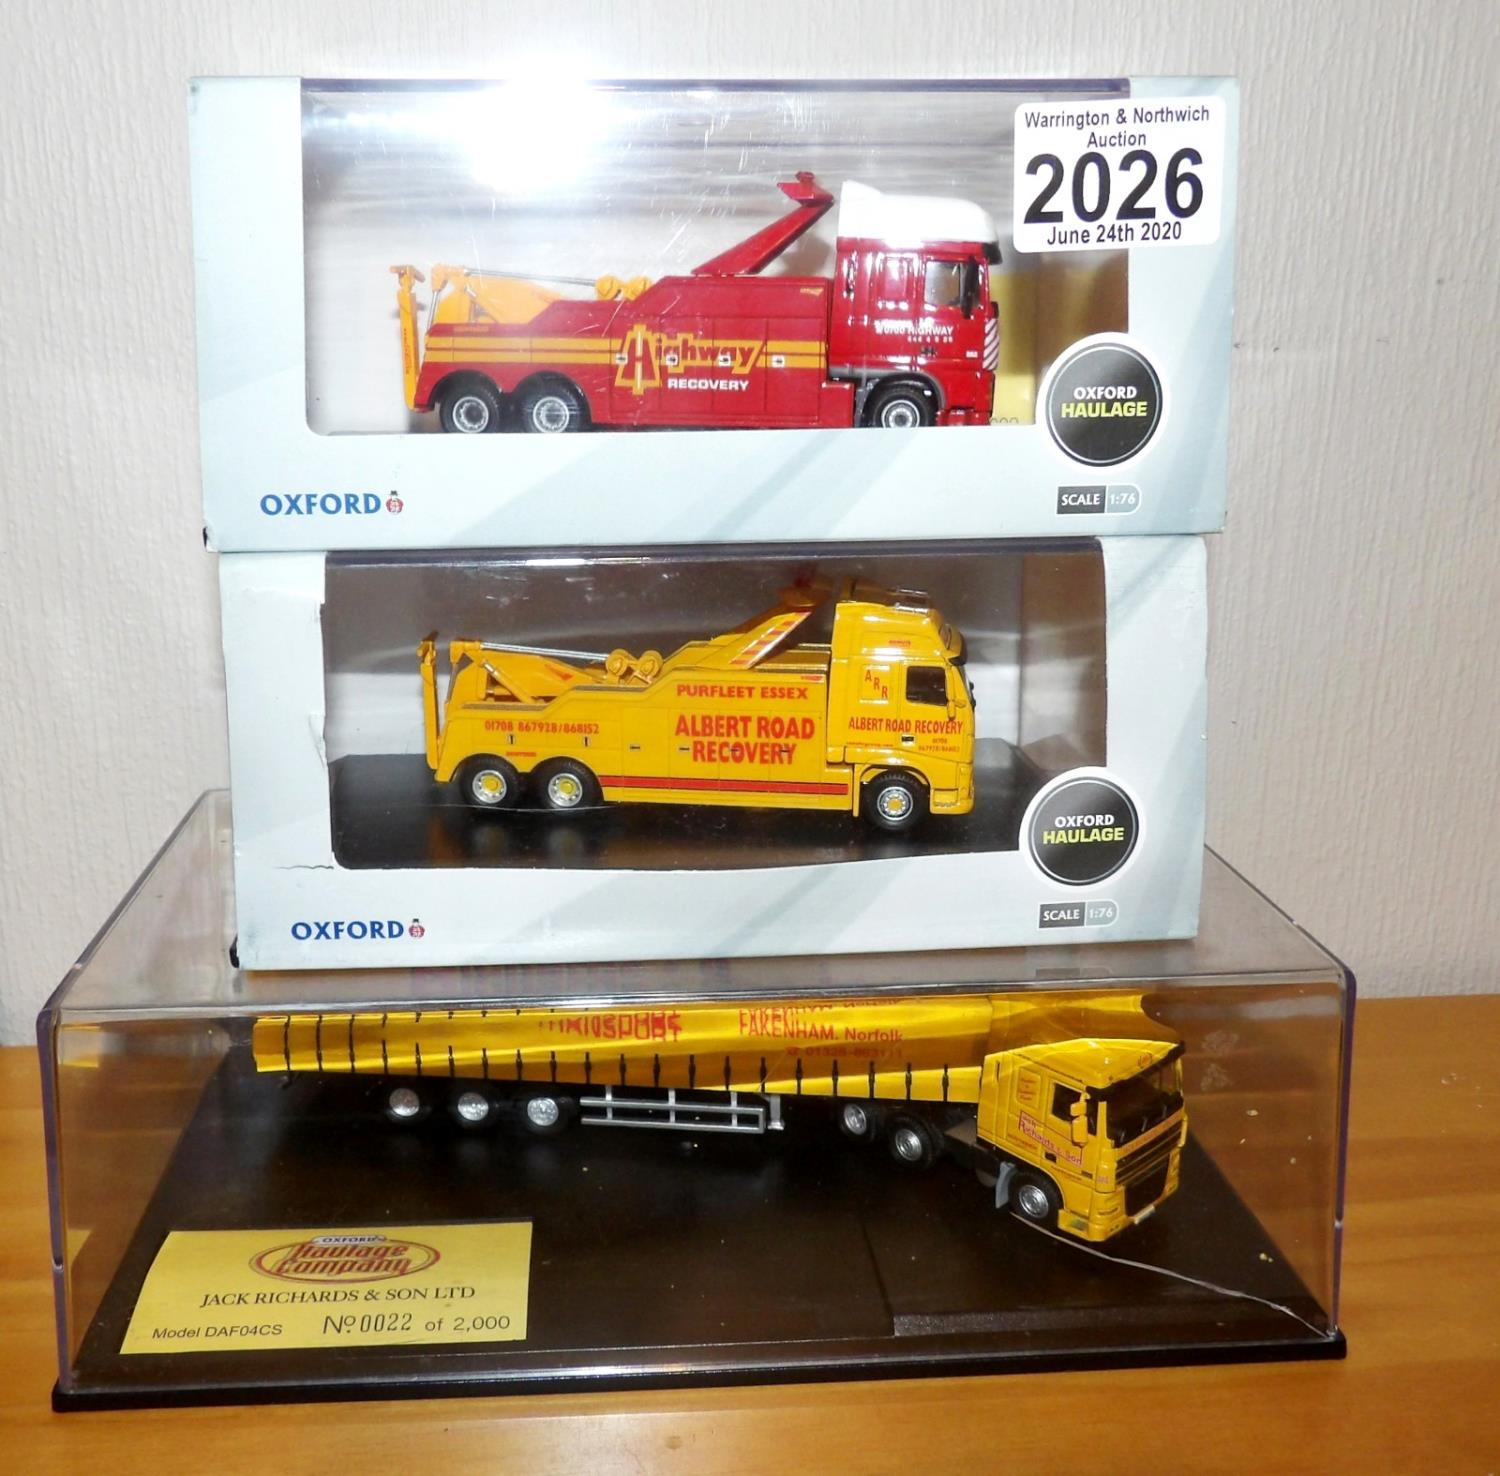 Lot 2026 - Oxford 1.76 x 3 2 x Recovery Vehicles and DAF Jack Richards Haulage Ltd Edition. P&P Group 2 (£18+